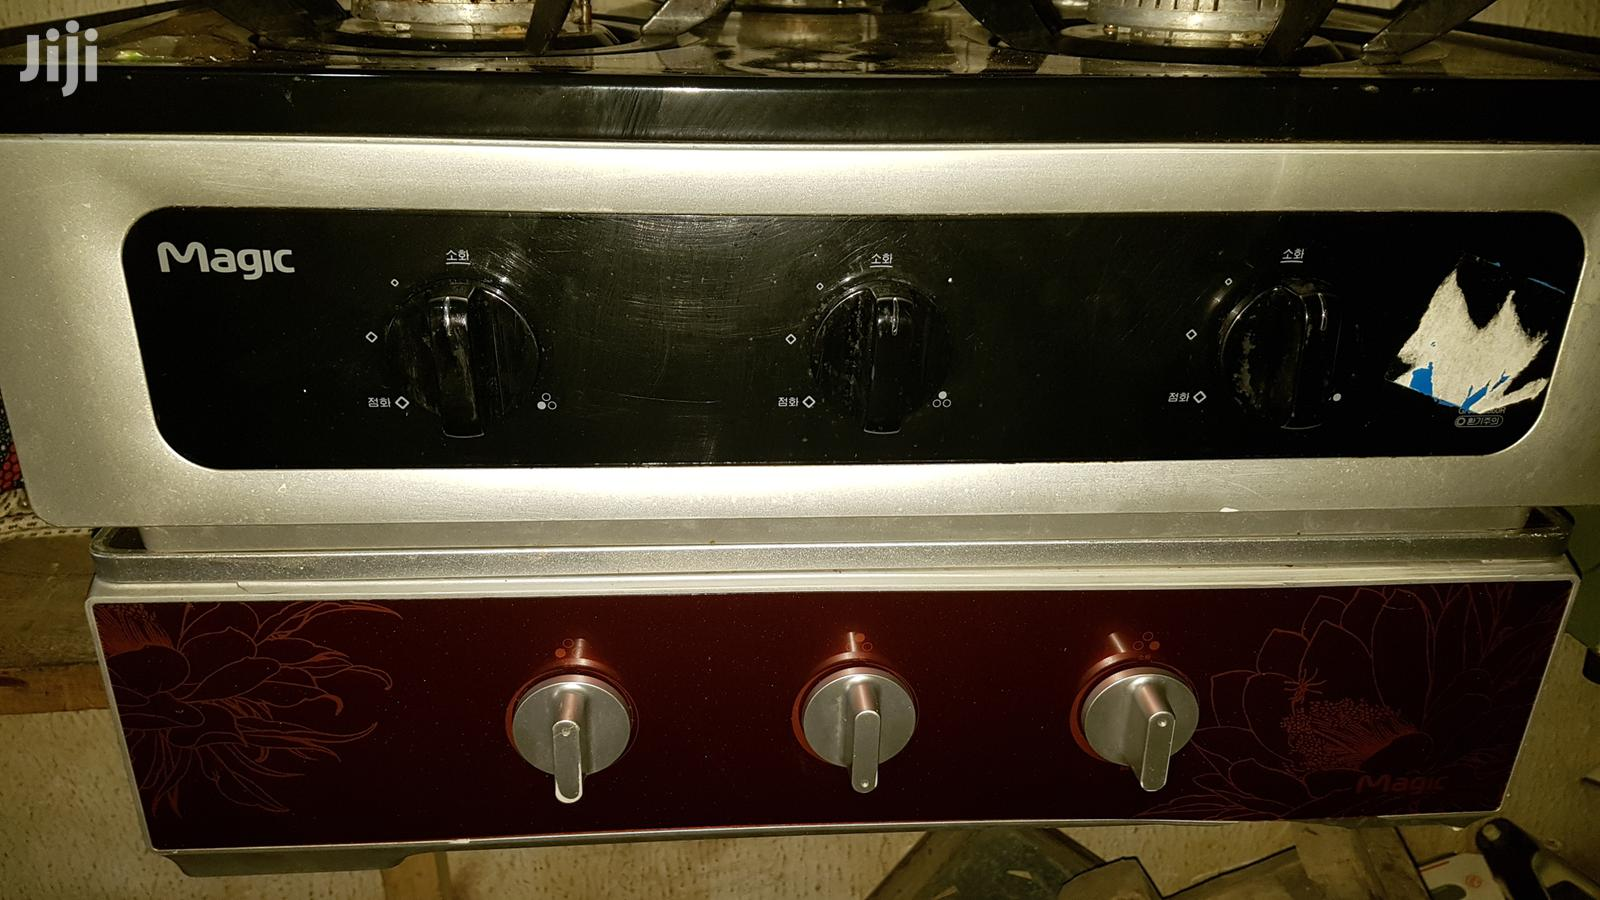 Foreign Used Table Top Gas Cooker | Kitchen Appliances for sale in Lagos State, Nigeria